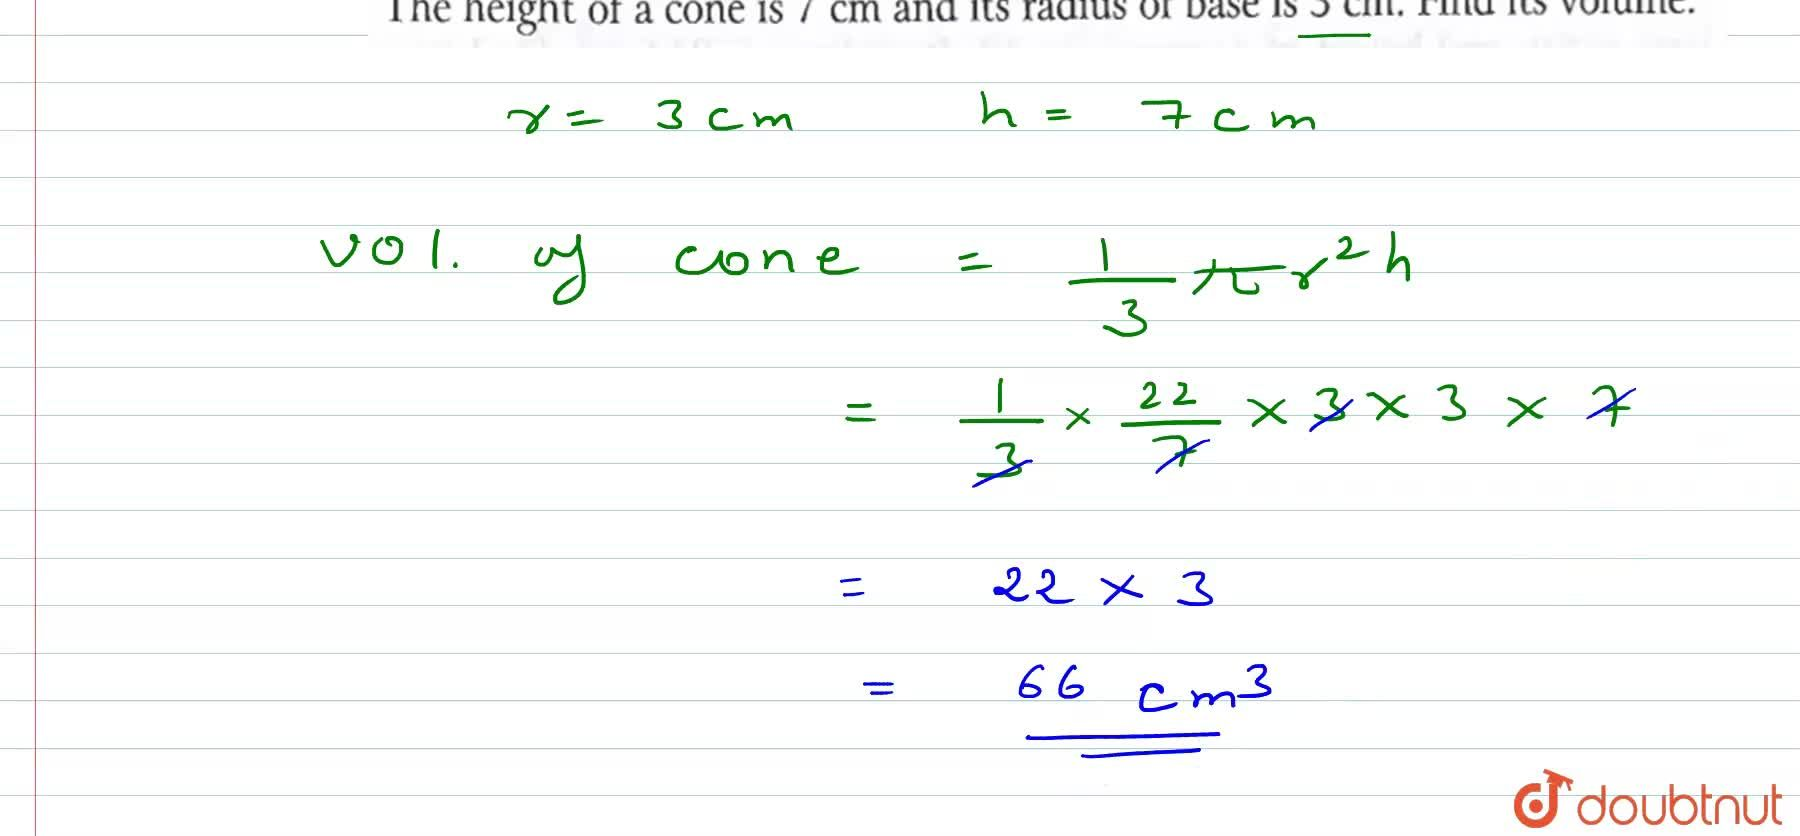 The height of a cone is 7 cm and its radius of base is 3 cm. Find its volume.